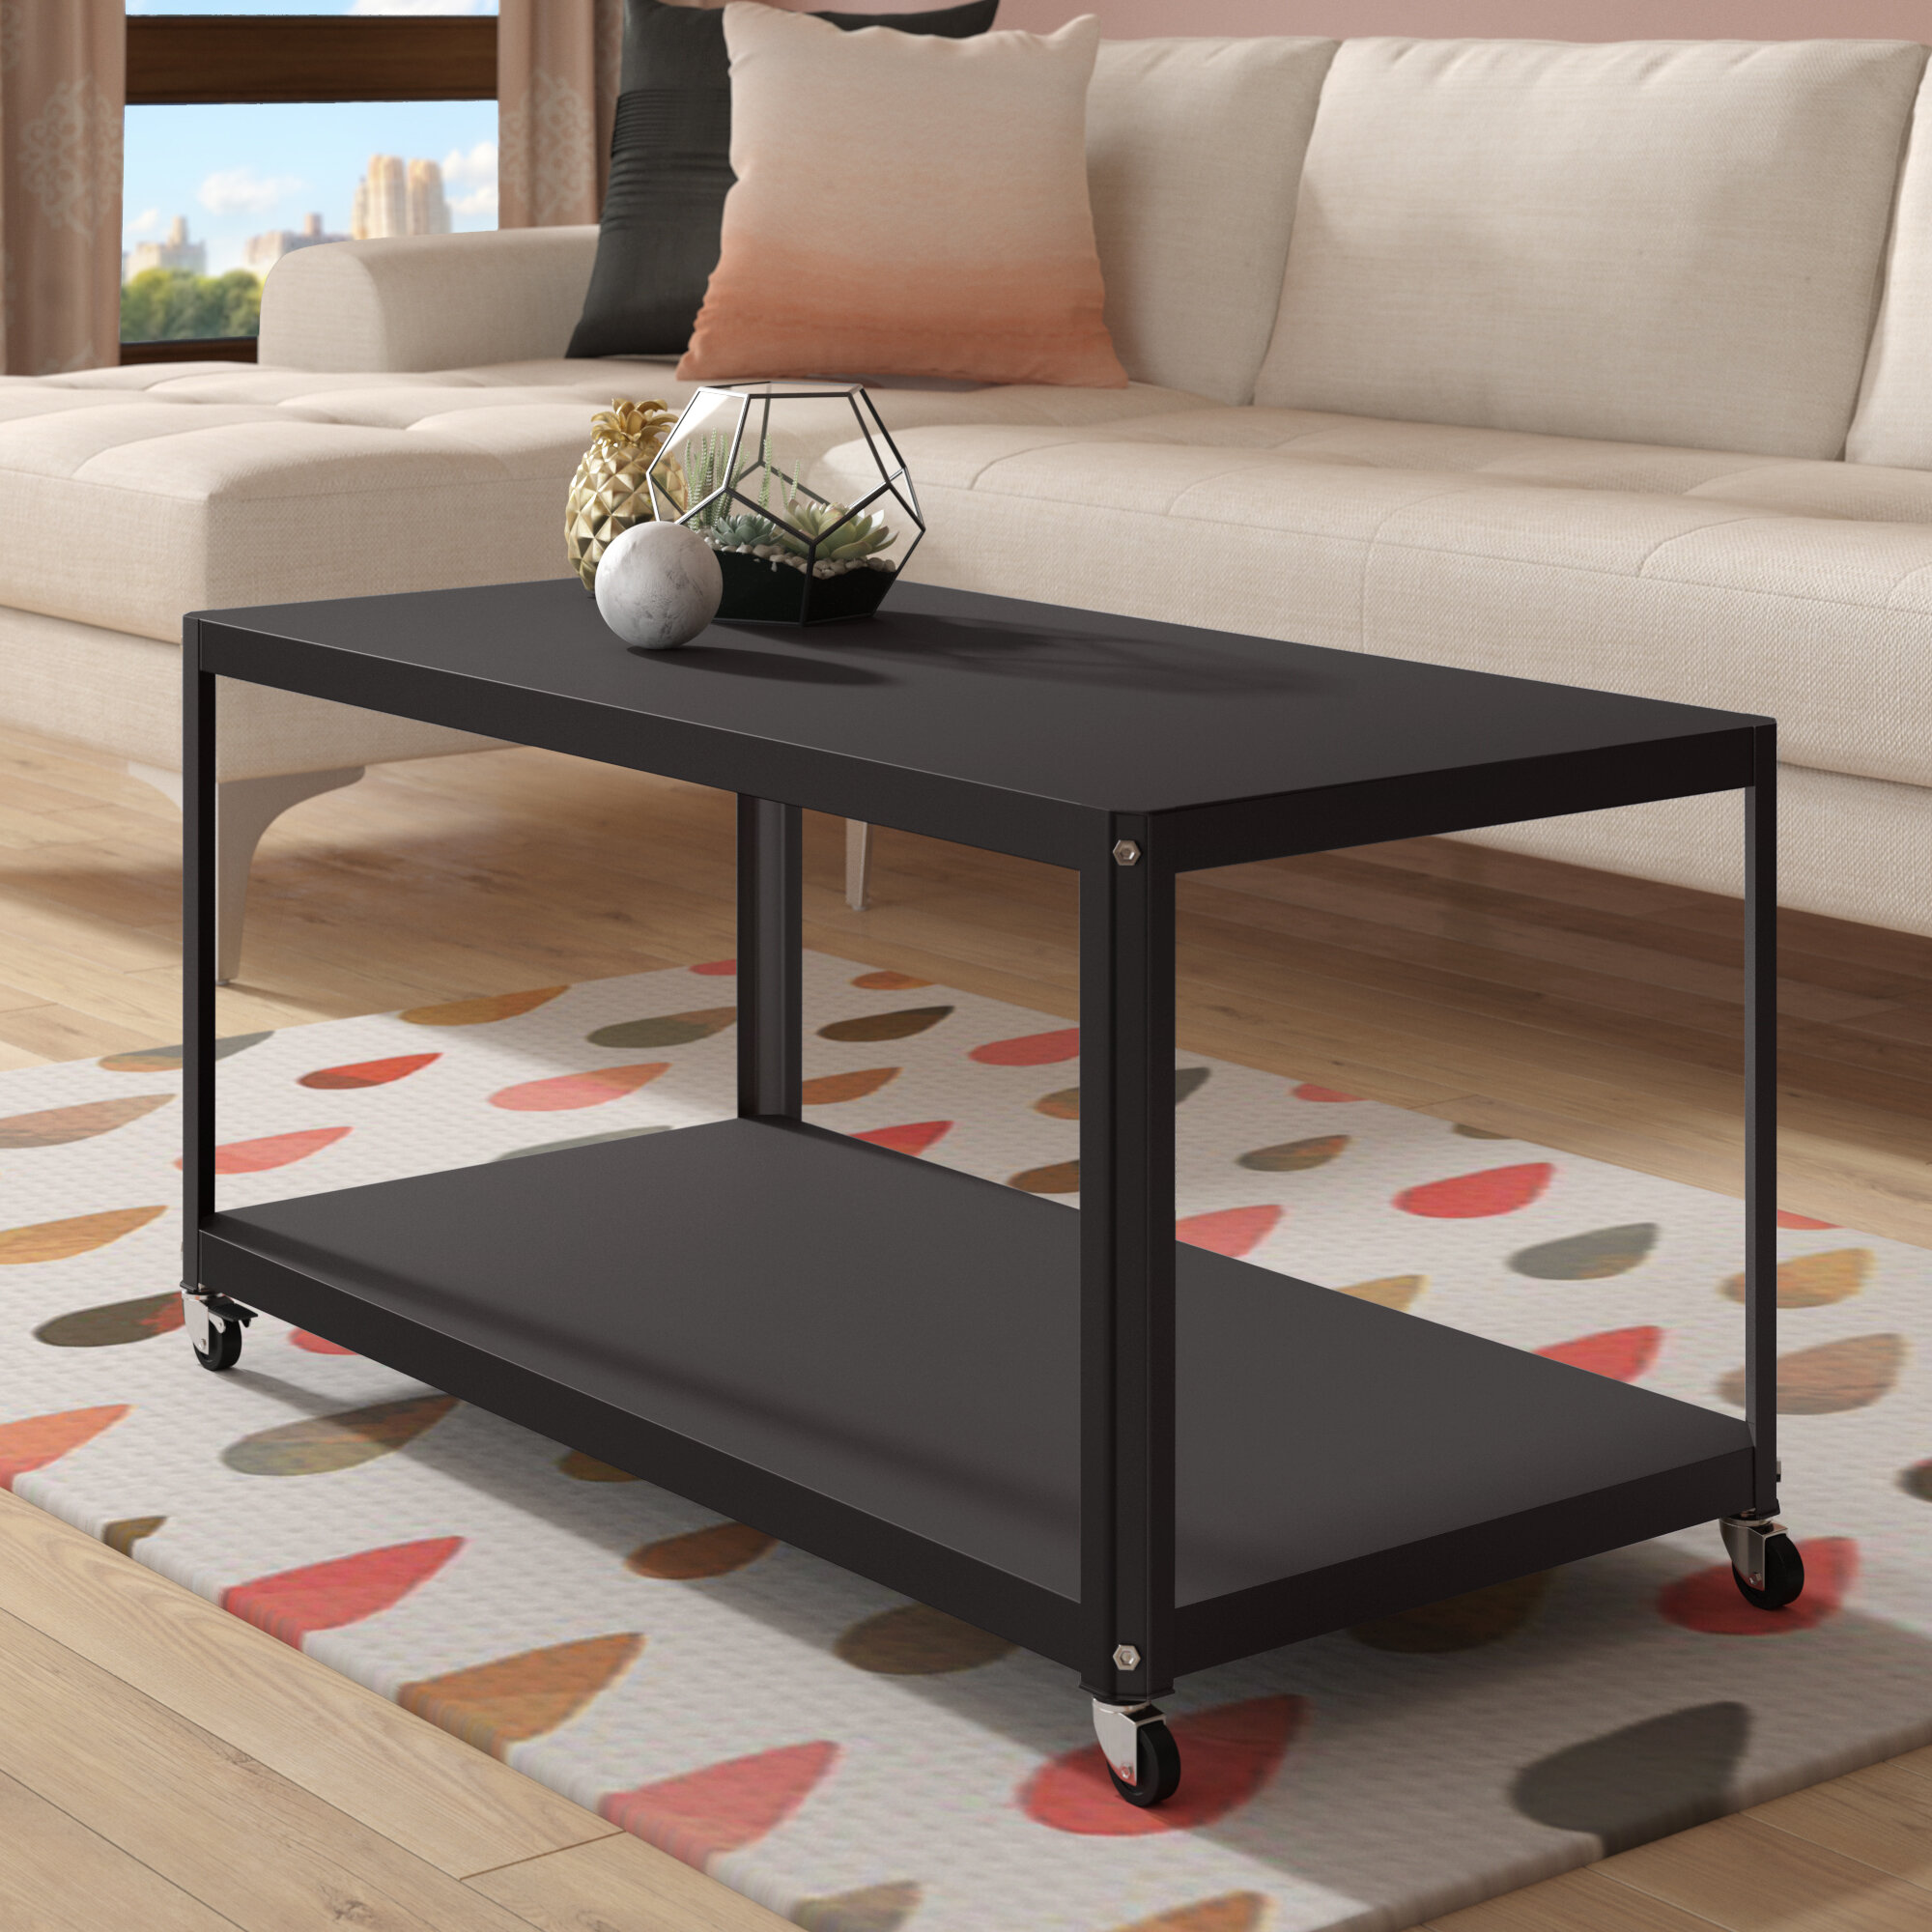 Peachy Coffee Tables Alphanode Cool Chair Designs And Ideas Alphanodeonline